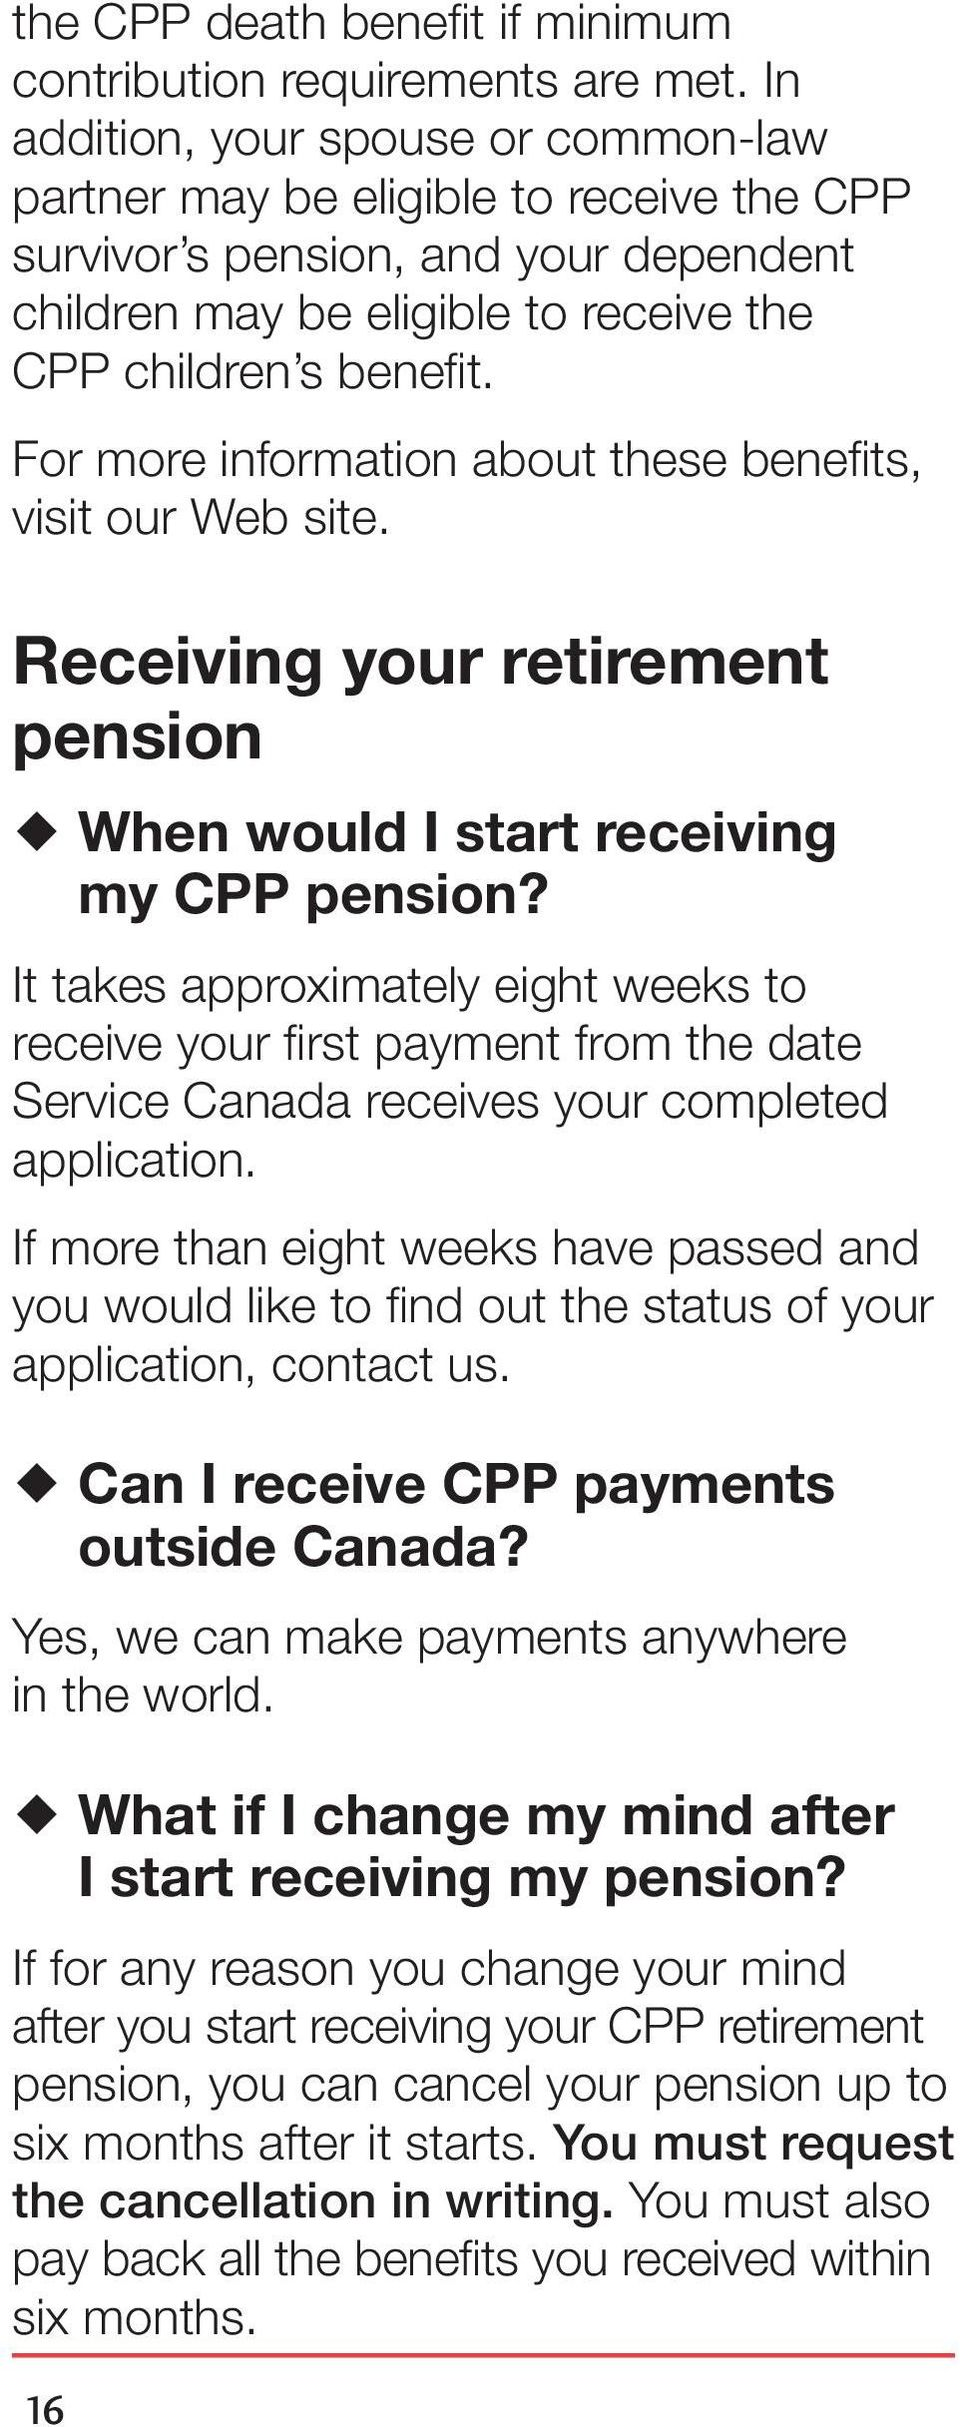 For more information about these benefits, visit our Web site. Receiving your retirement pension When would I start receiving my CPP pension?